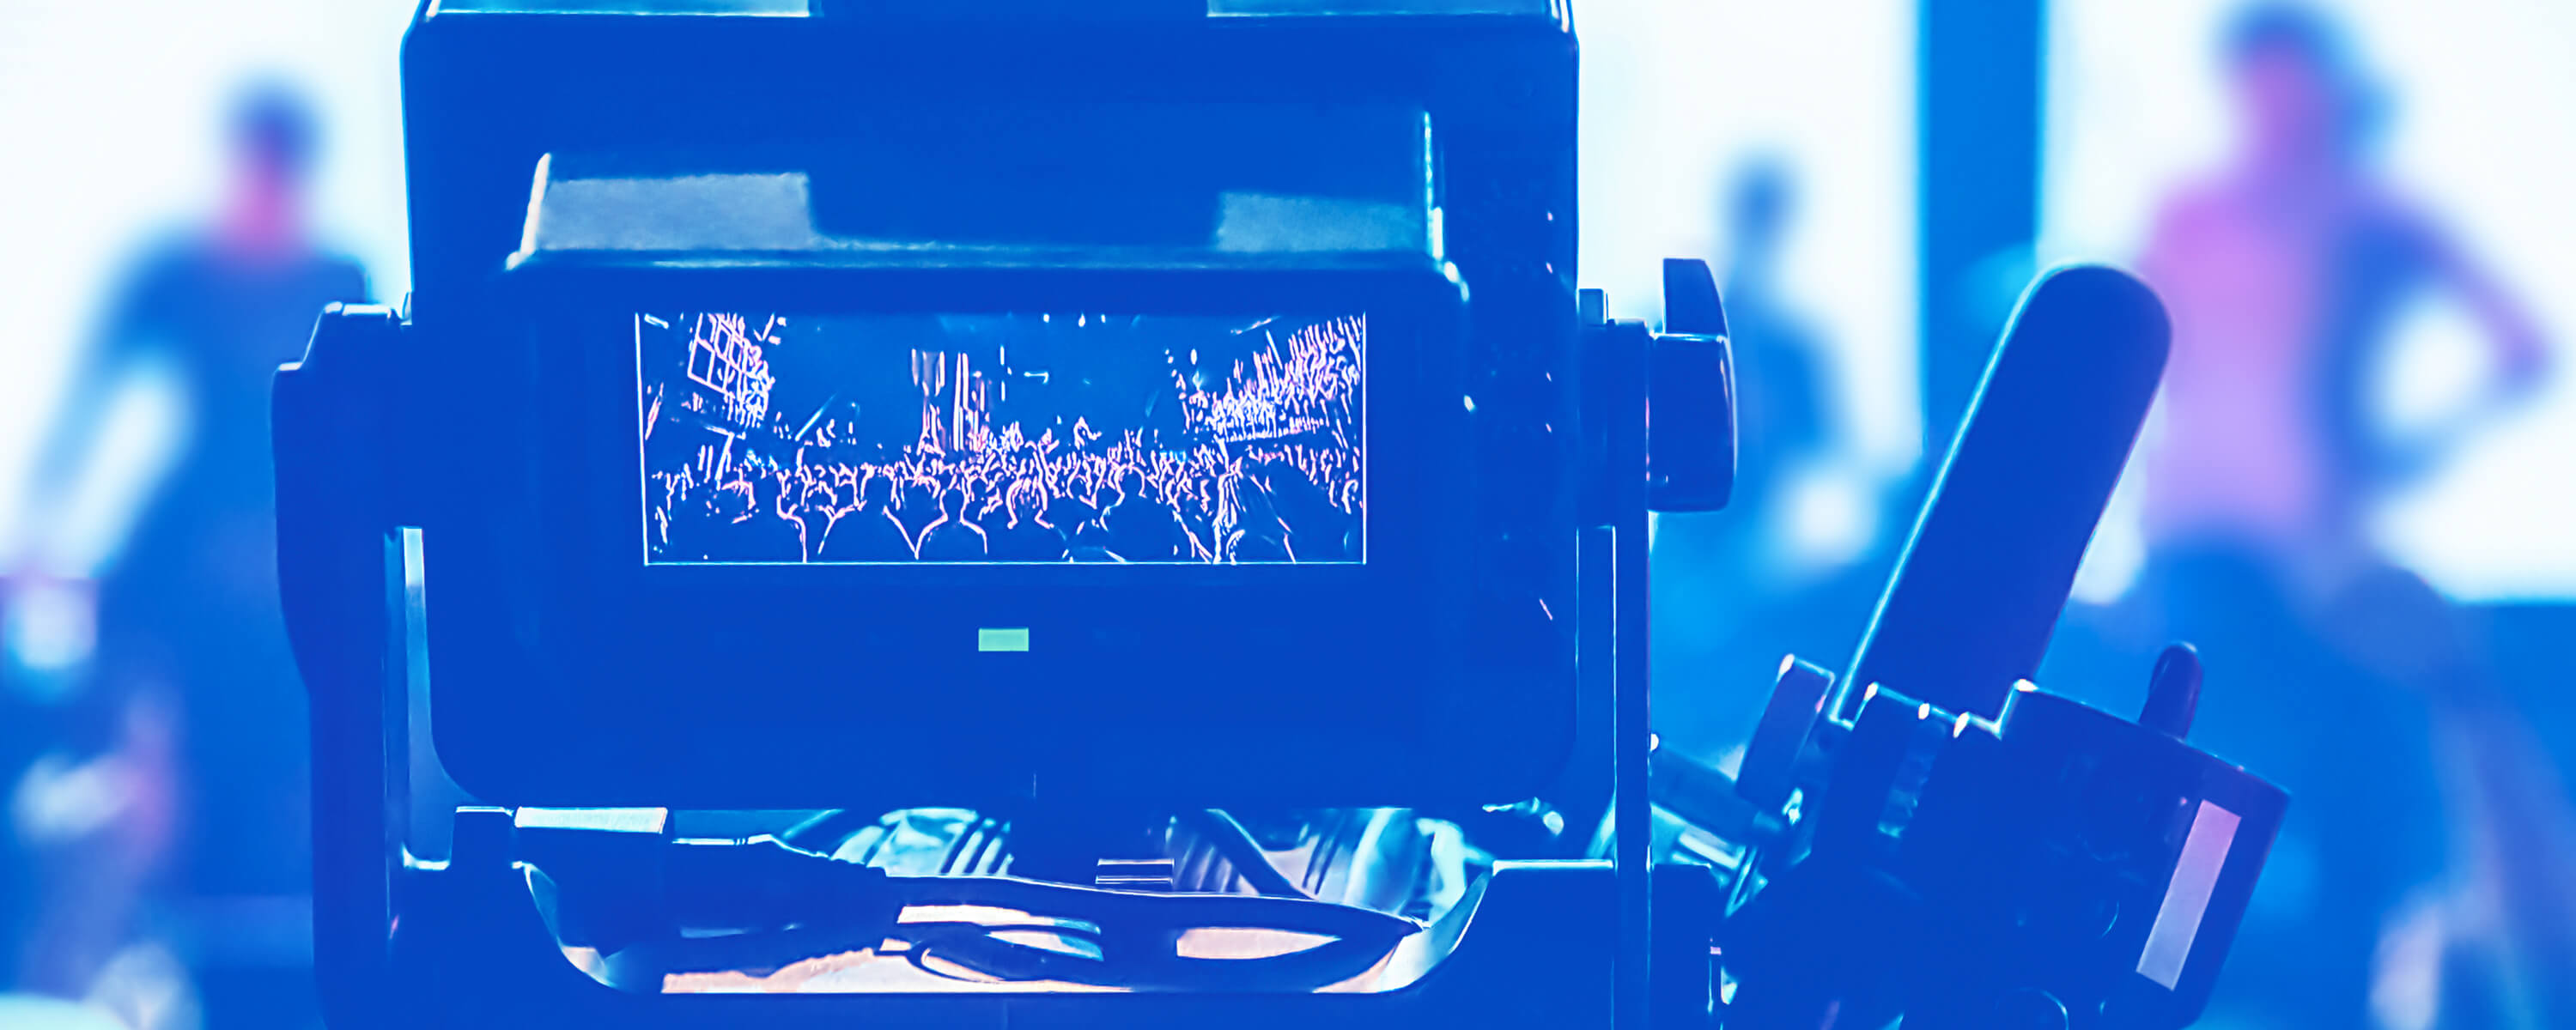 Quick Guide to Using Video Content at Your Next Event | Banzai